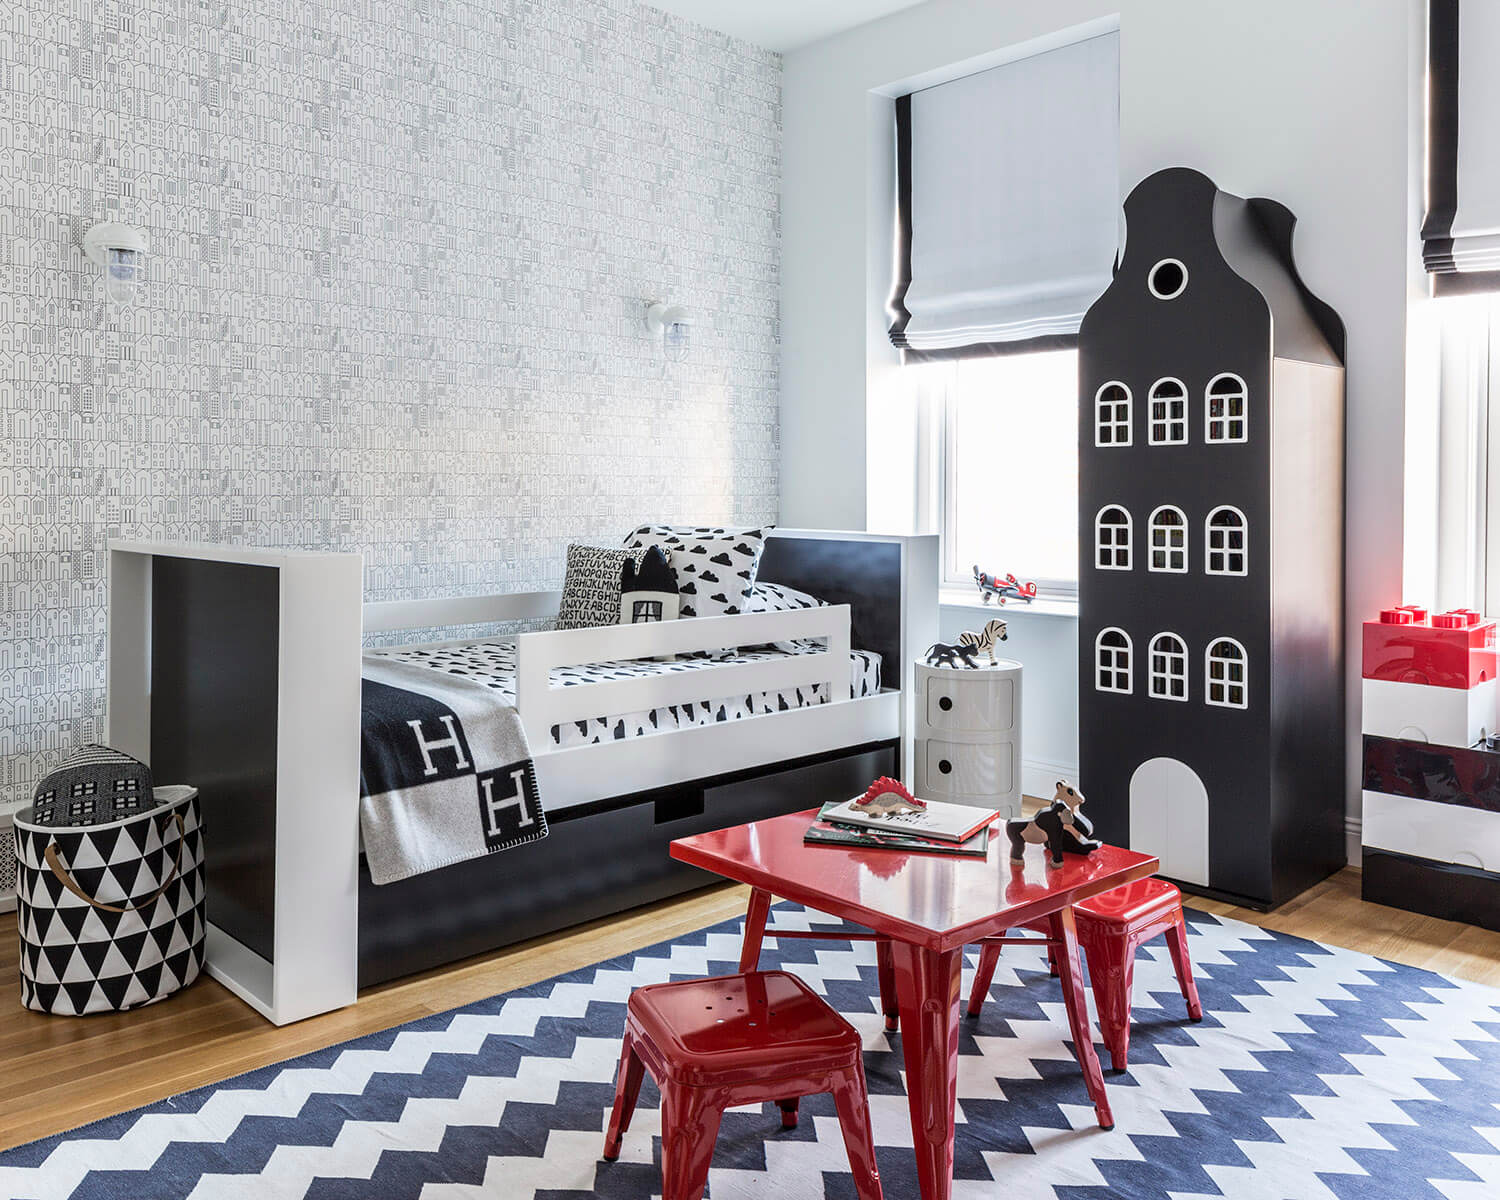 6 Things to Consider when Creating Your Kids Room